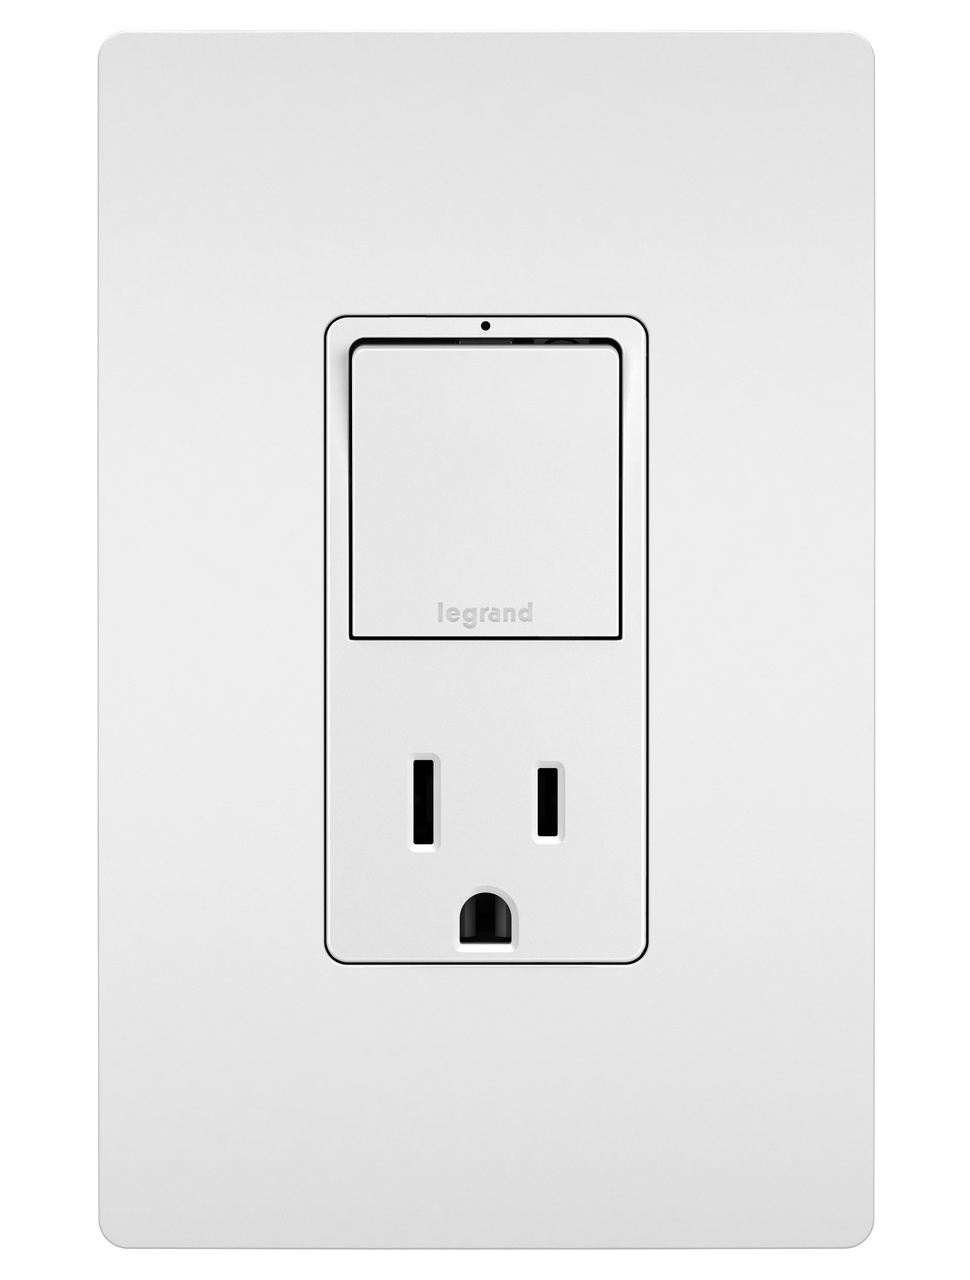 hight resolution of radiant rcd38trw combo single pole 3 way switch 15a tr outlet white legrand